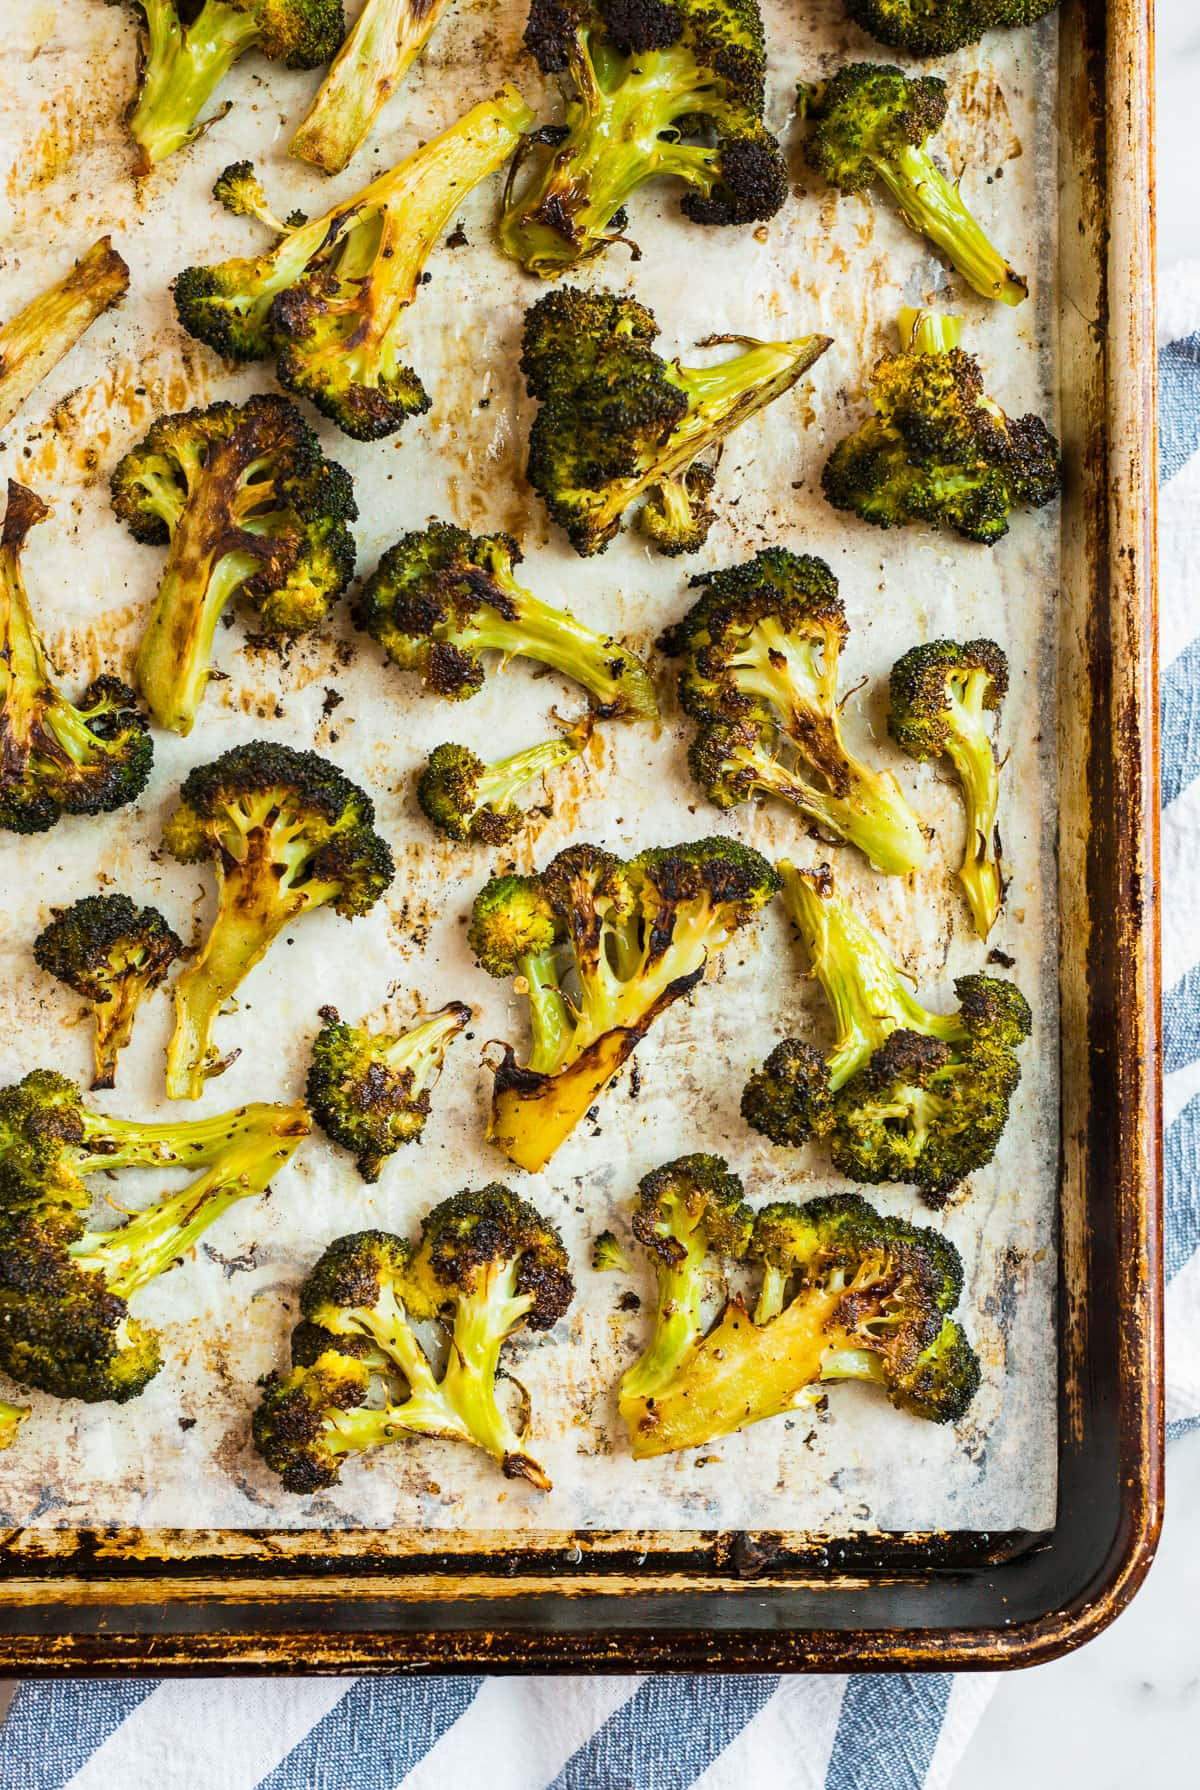 Roasted broccoli on a sheet pan